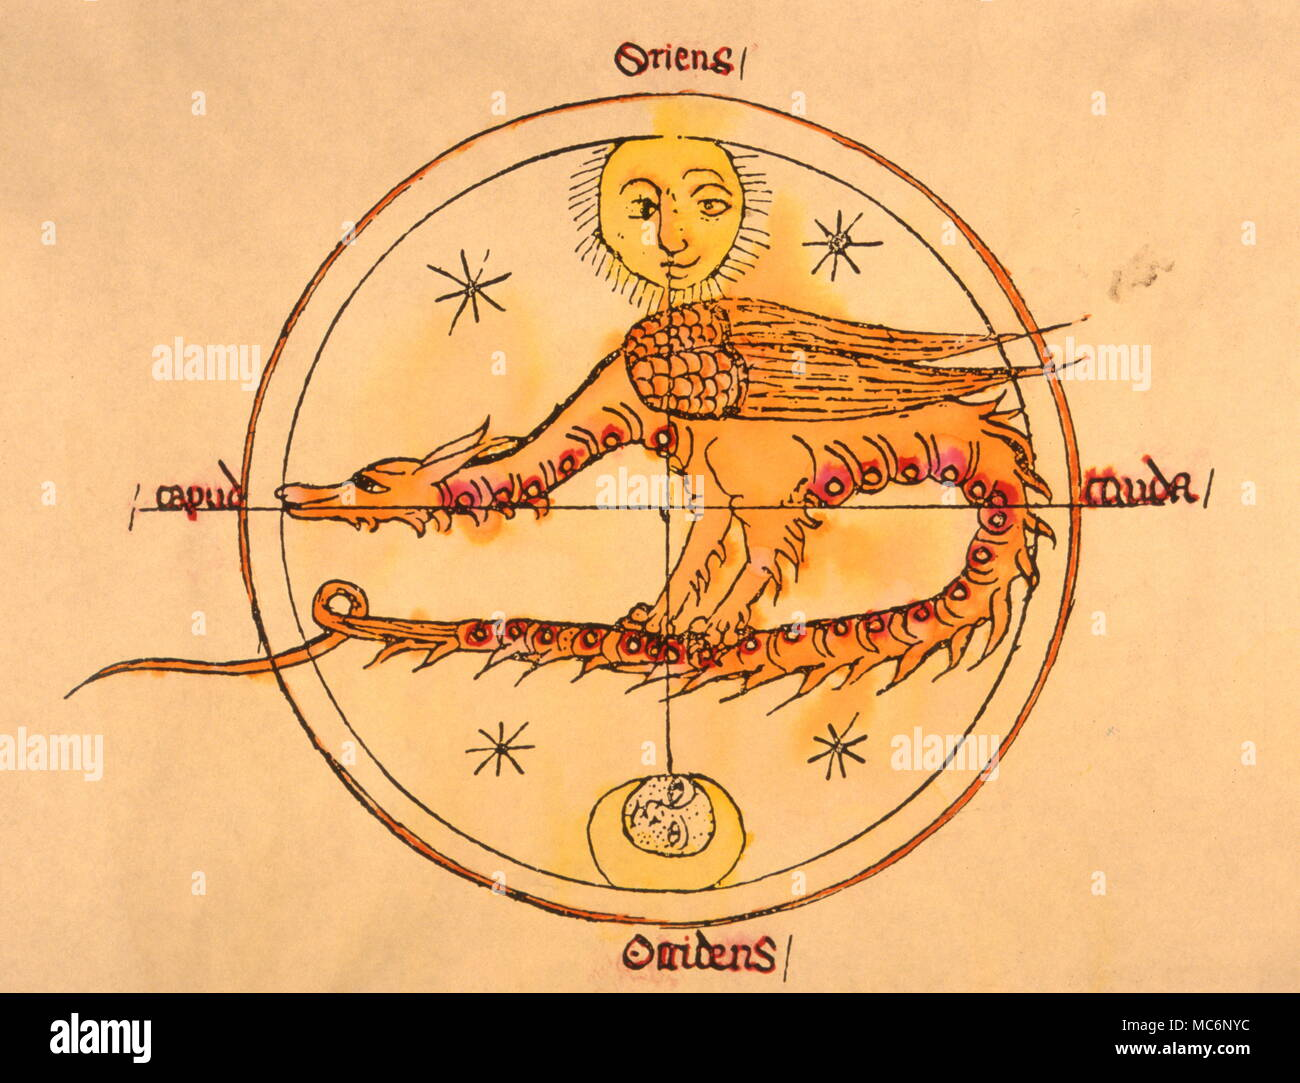 Image of Caput and Cauda Draconis, after a diagram from a work by he mediaeval astrologer, Michael Scot. Stock Photo